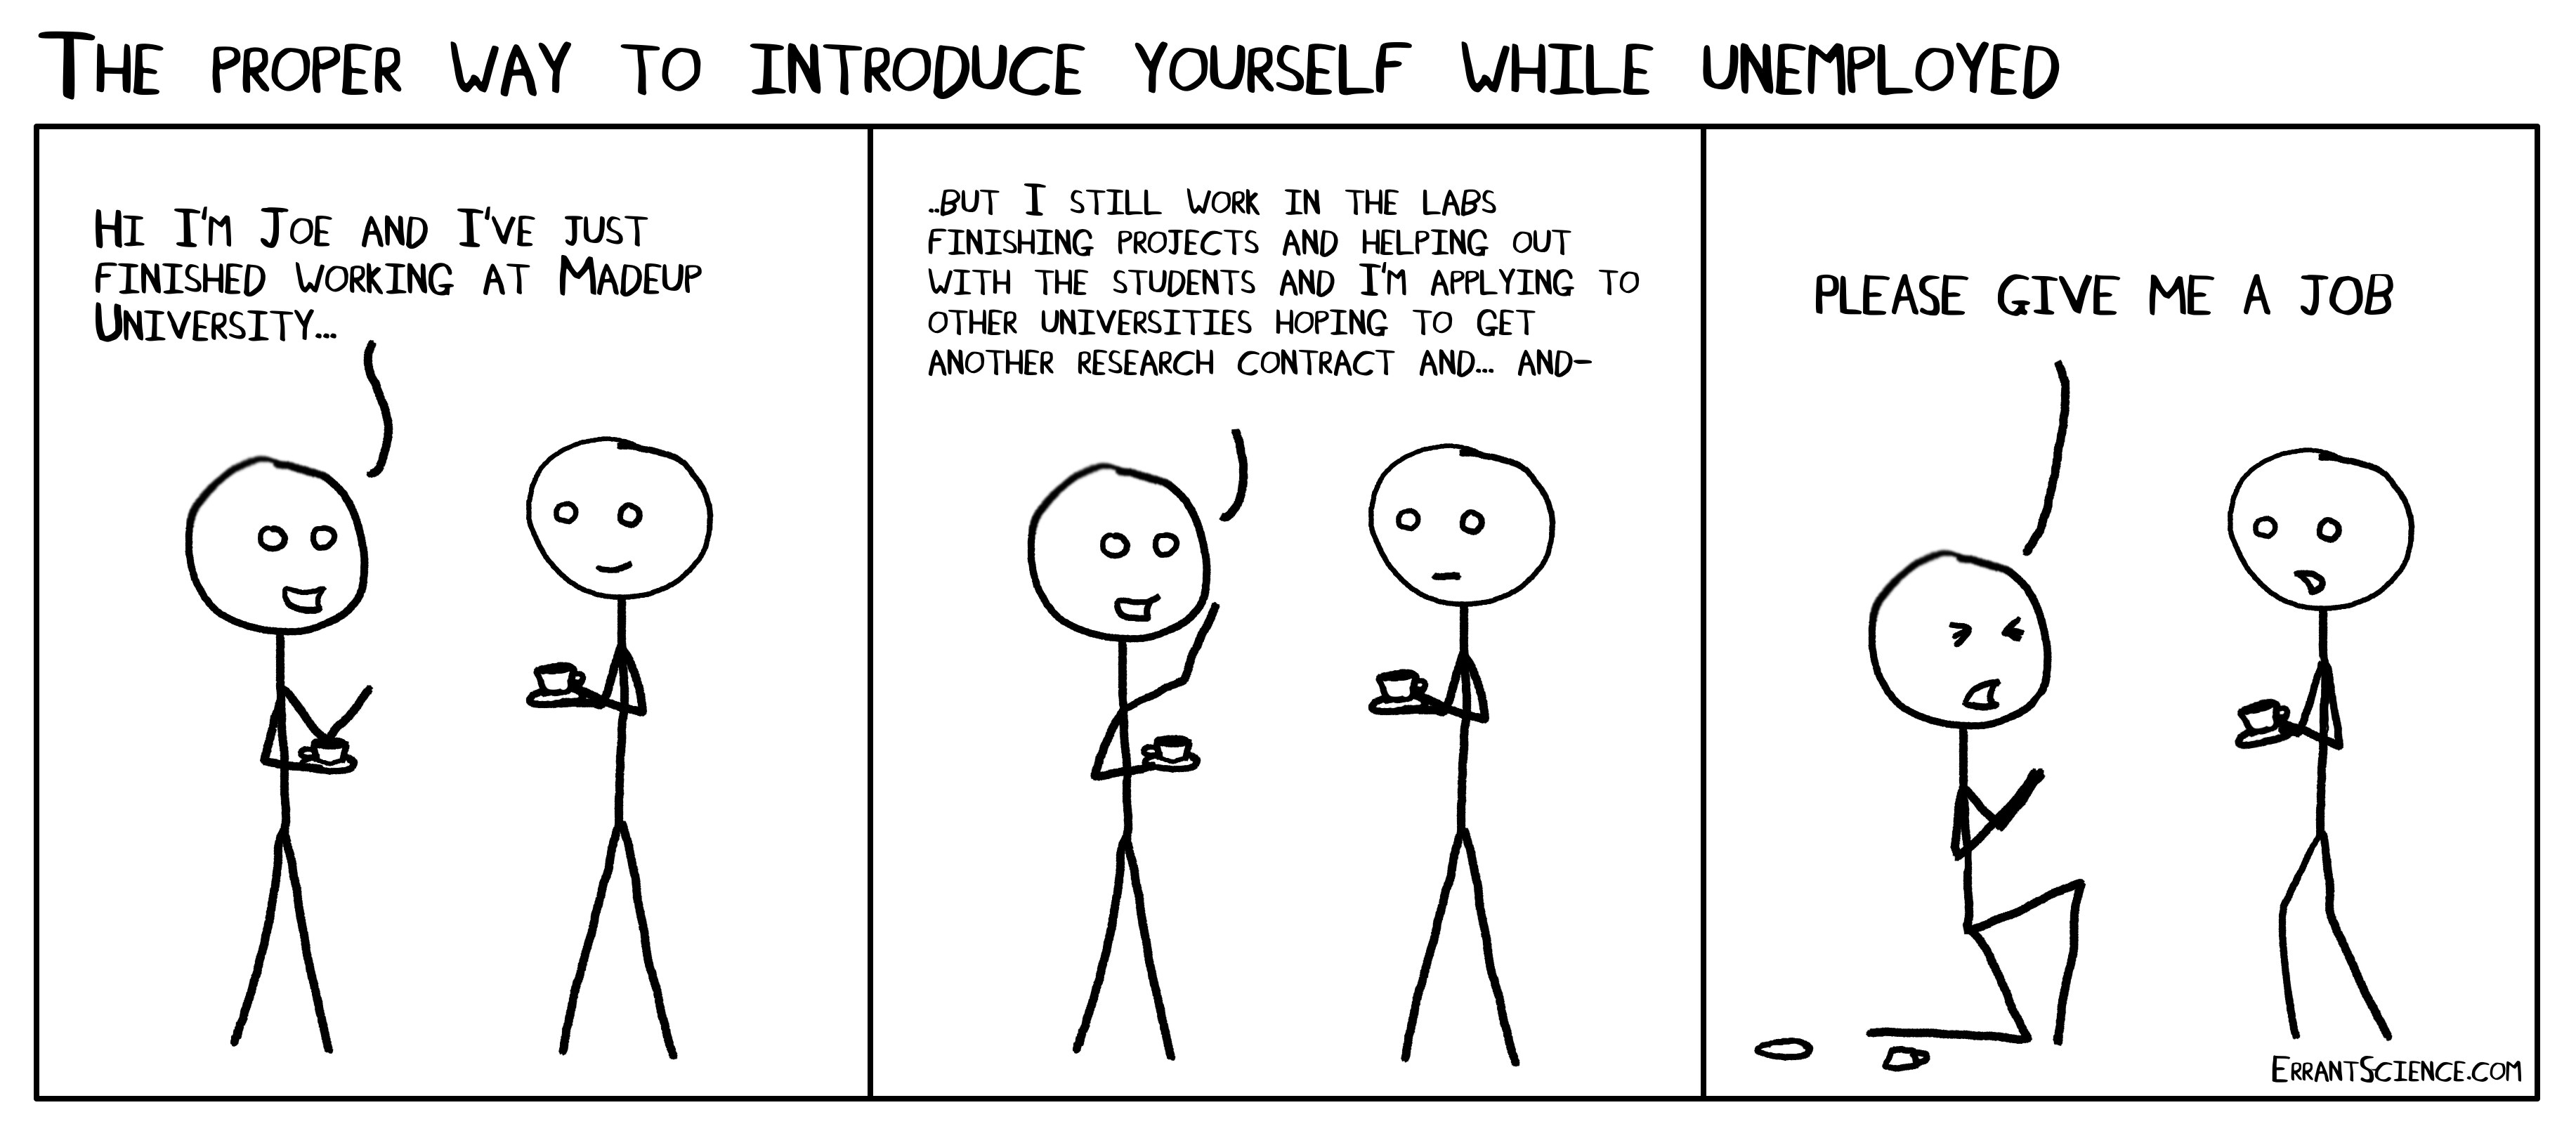 how to introduce yourself as an unemployed researcher errantscience